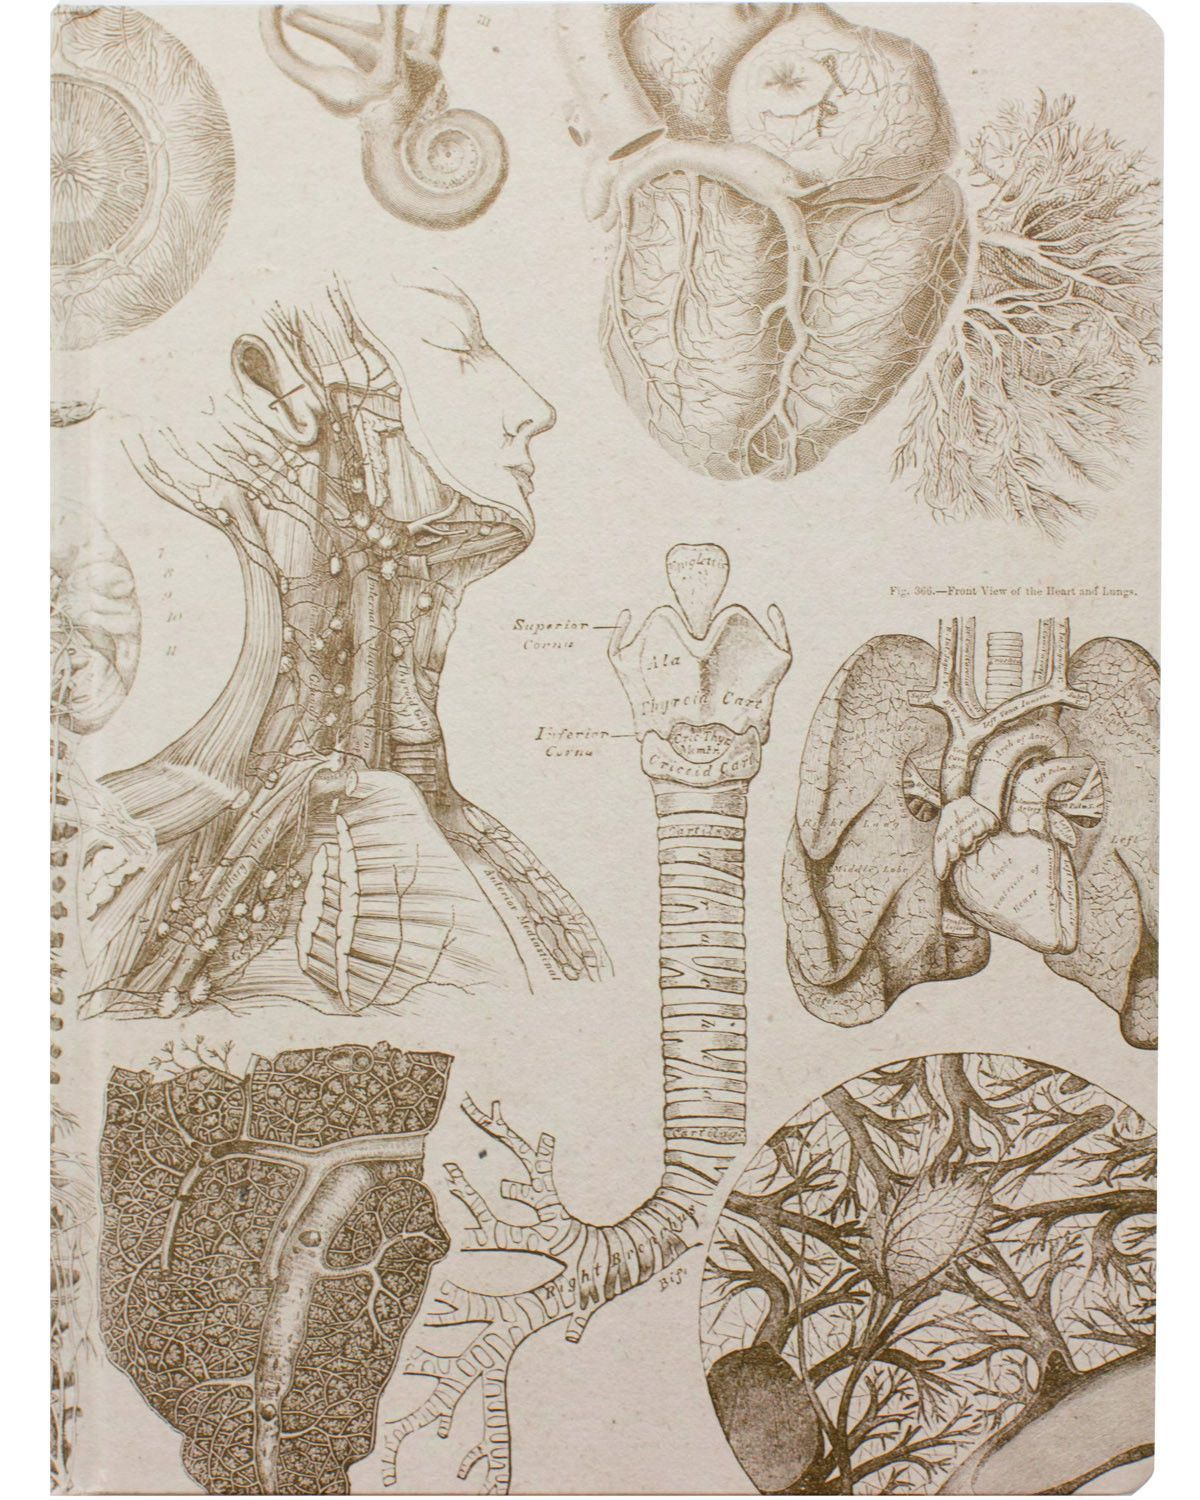 Human Anatomy XL Journal | Anatomy, Sketchbooks and Vintage